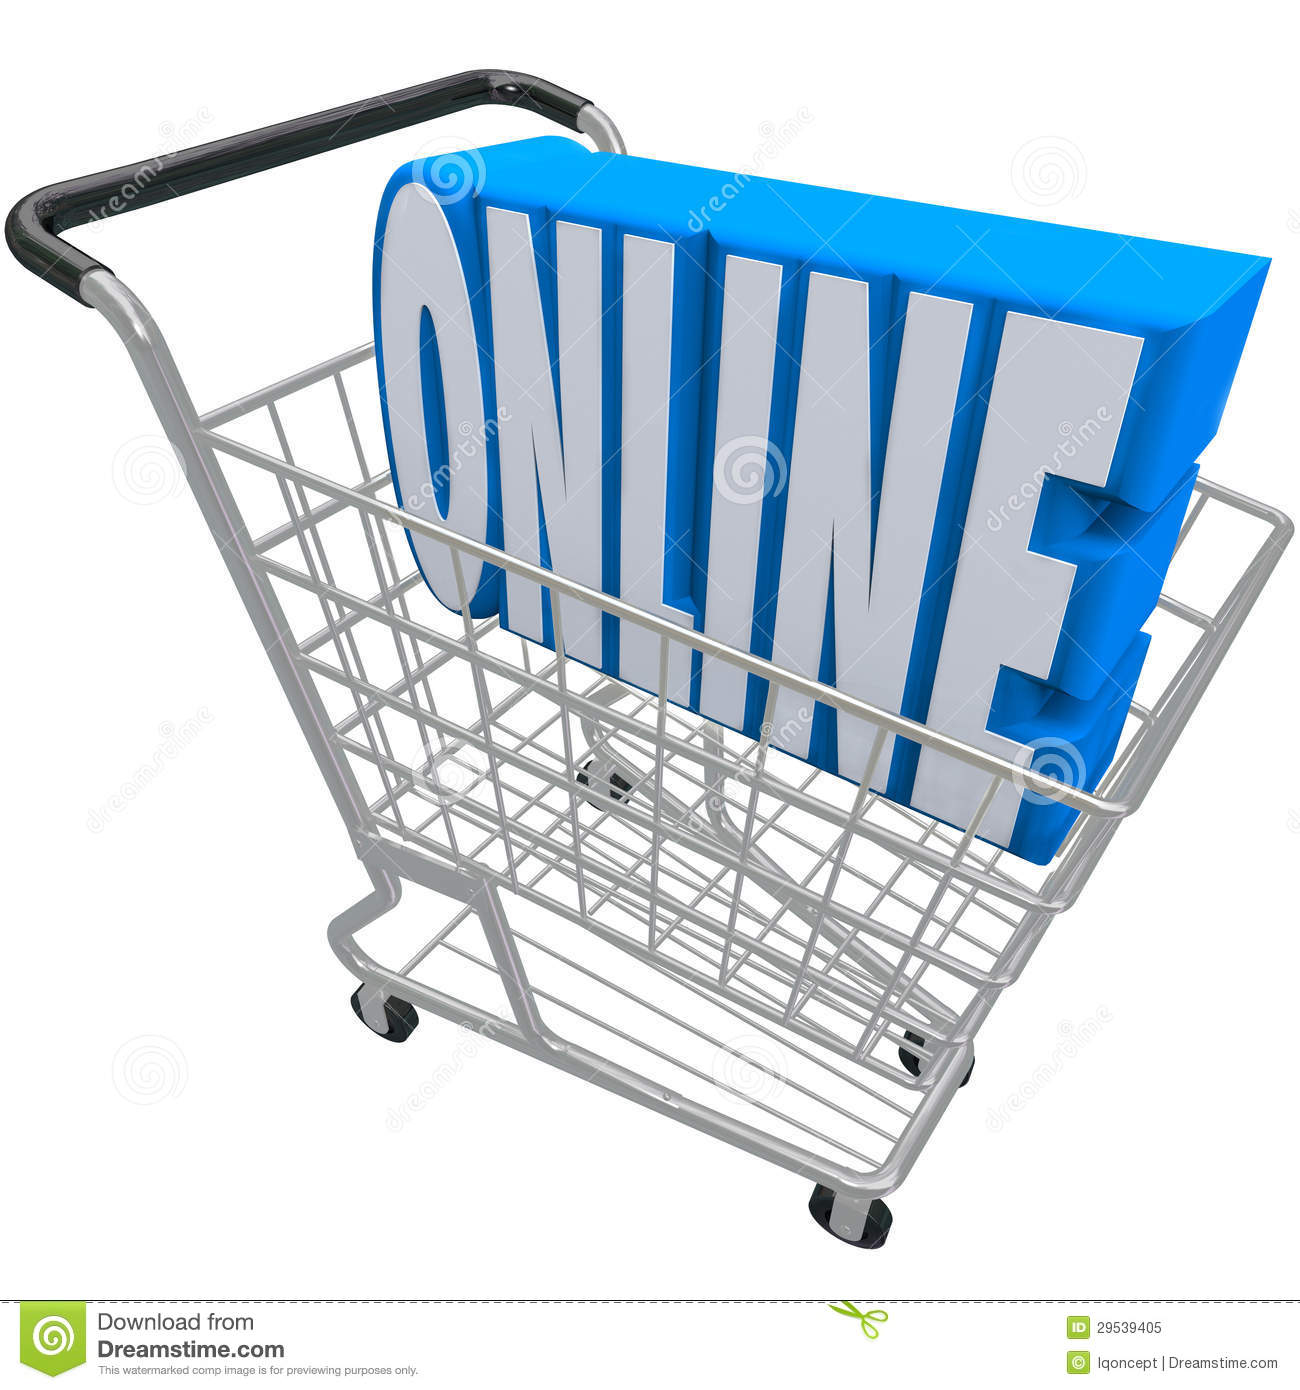 What is cart in online shopping